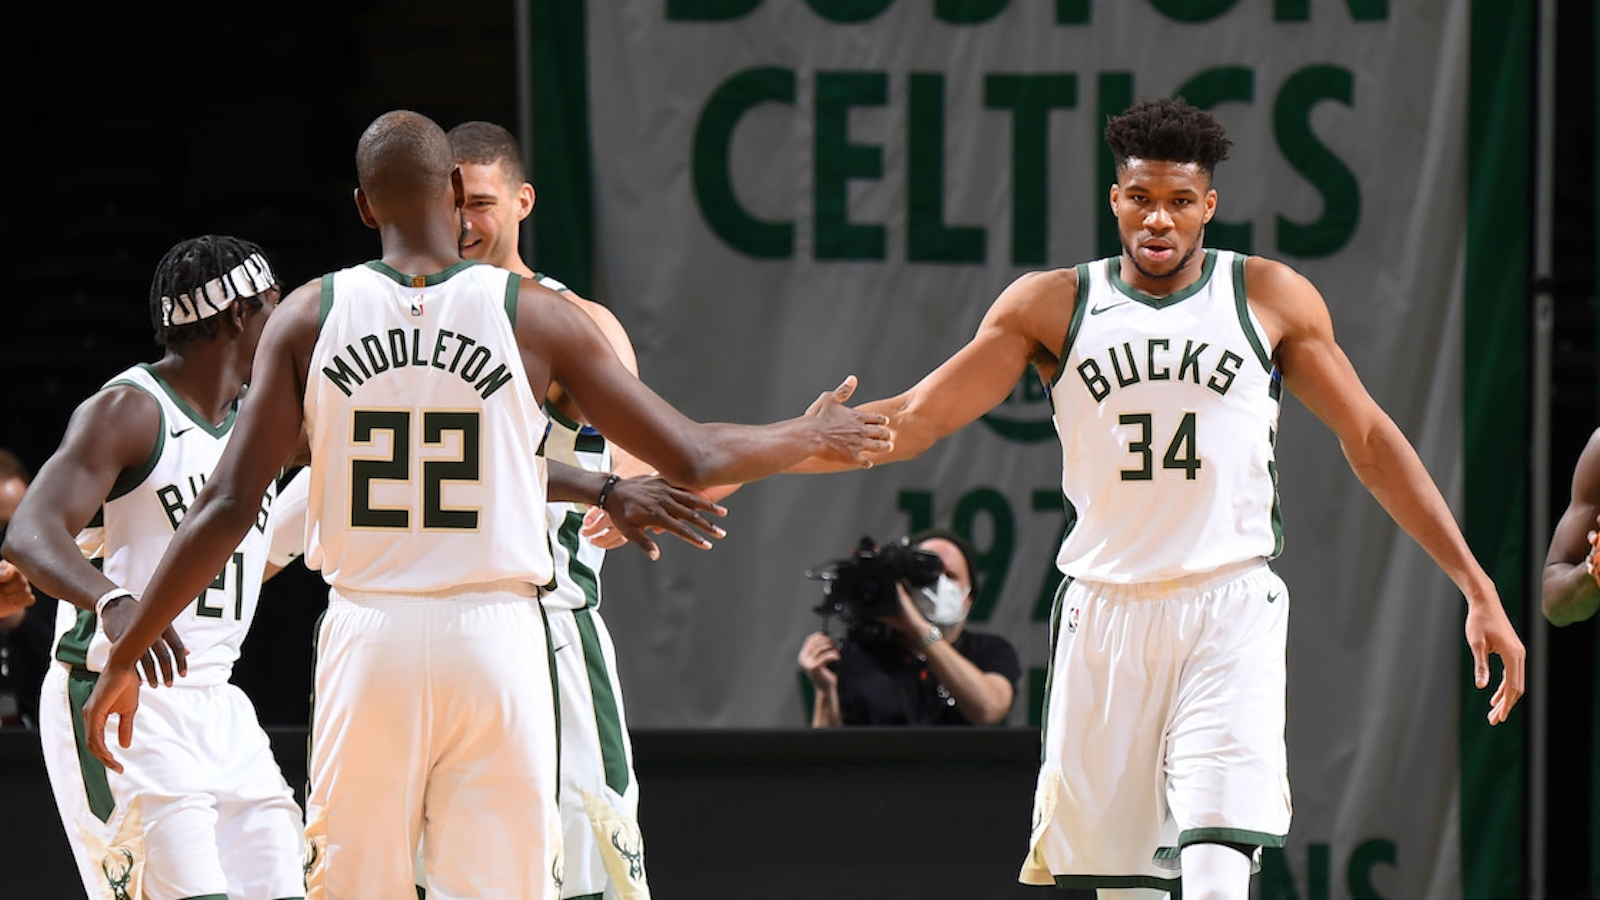 """Justin Kubatko on Twitter: """"Giannis Antetokounmpo (35 points), Khris Middleton (27), and Jrue Holiday (25) all scored at least 25 points for the @Bucks tonight. It's just the ninth time in NBA"""